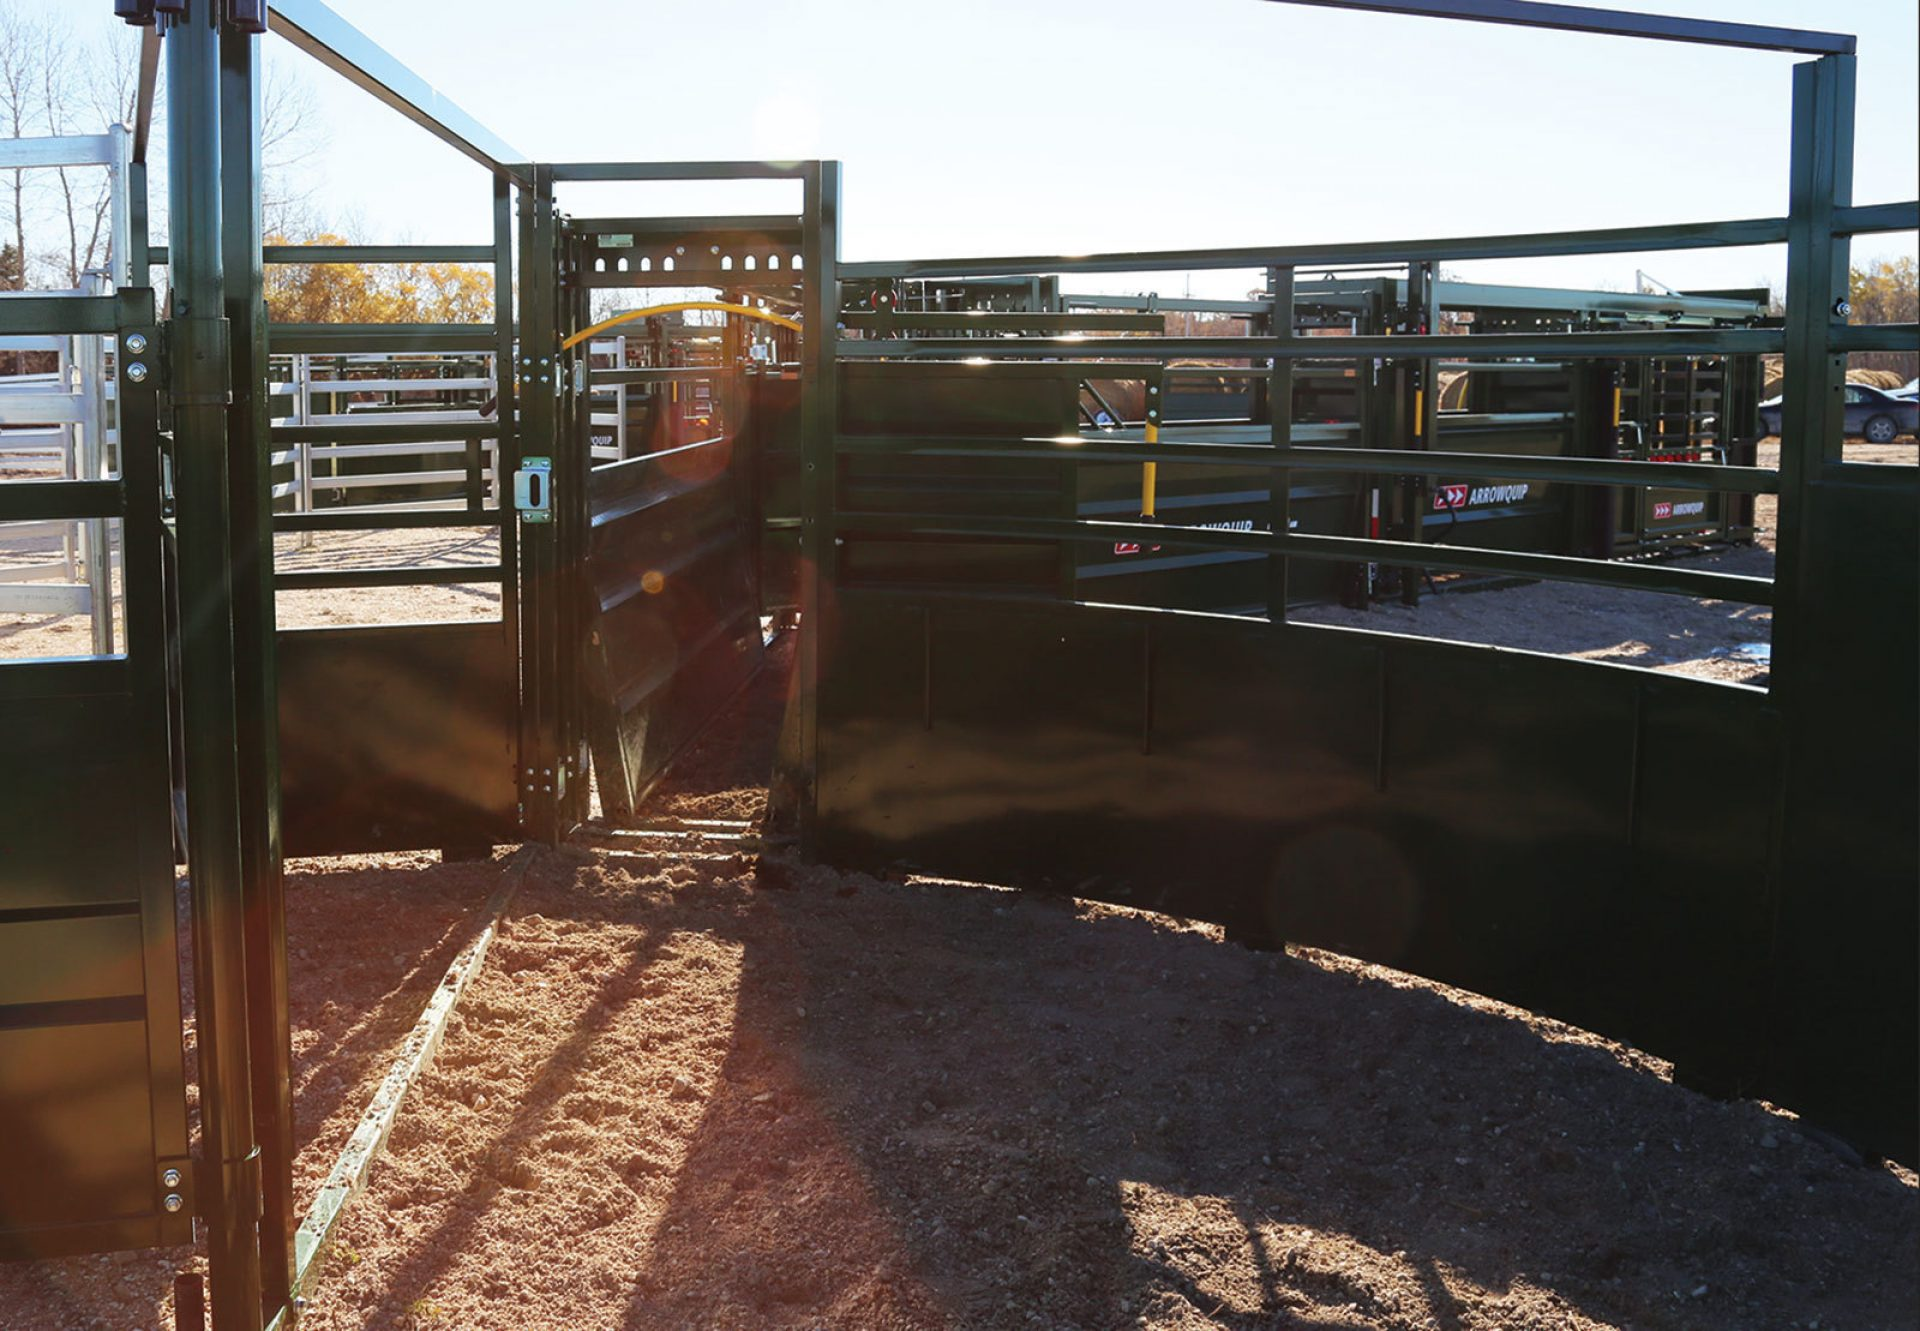 3E System in Cattle Crowding Tub uses light to guide cattle